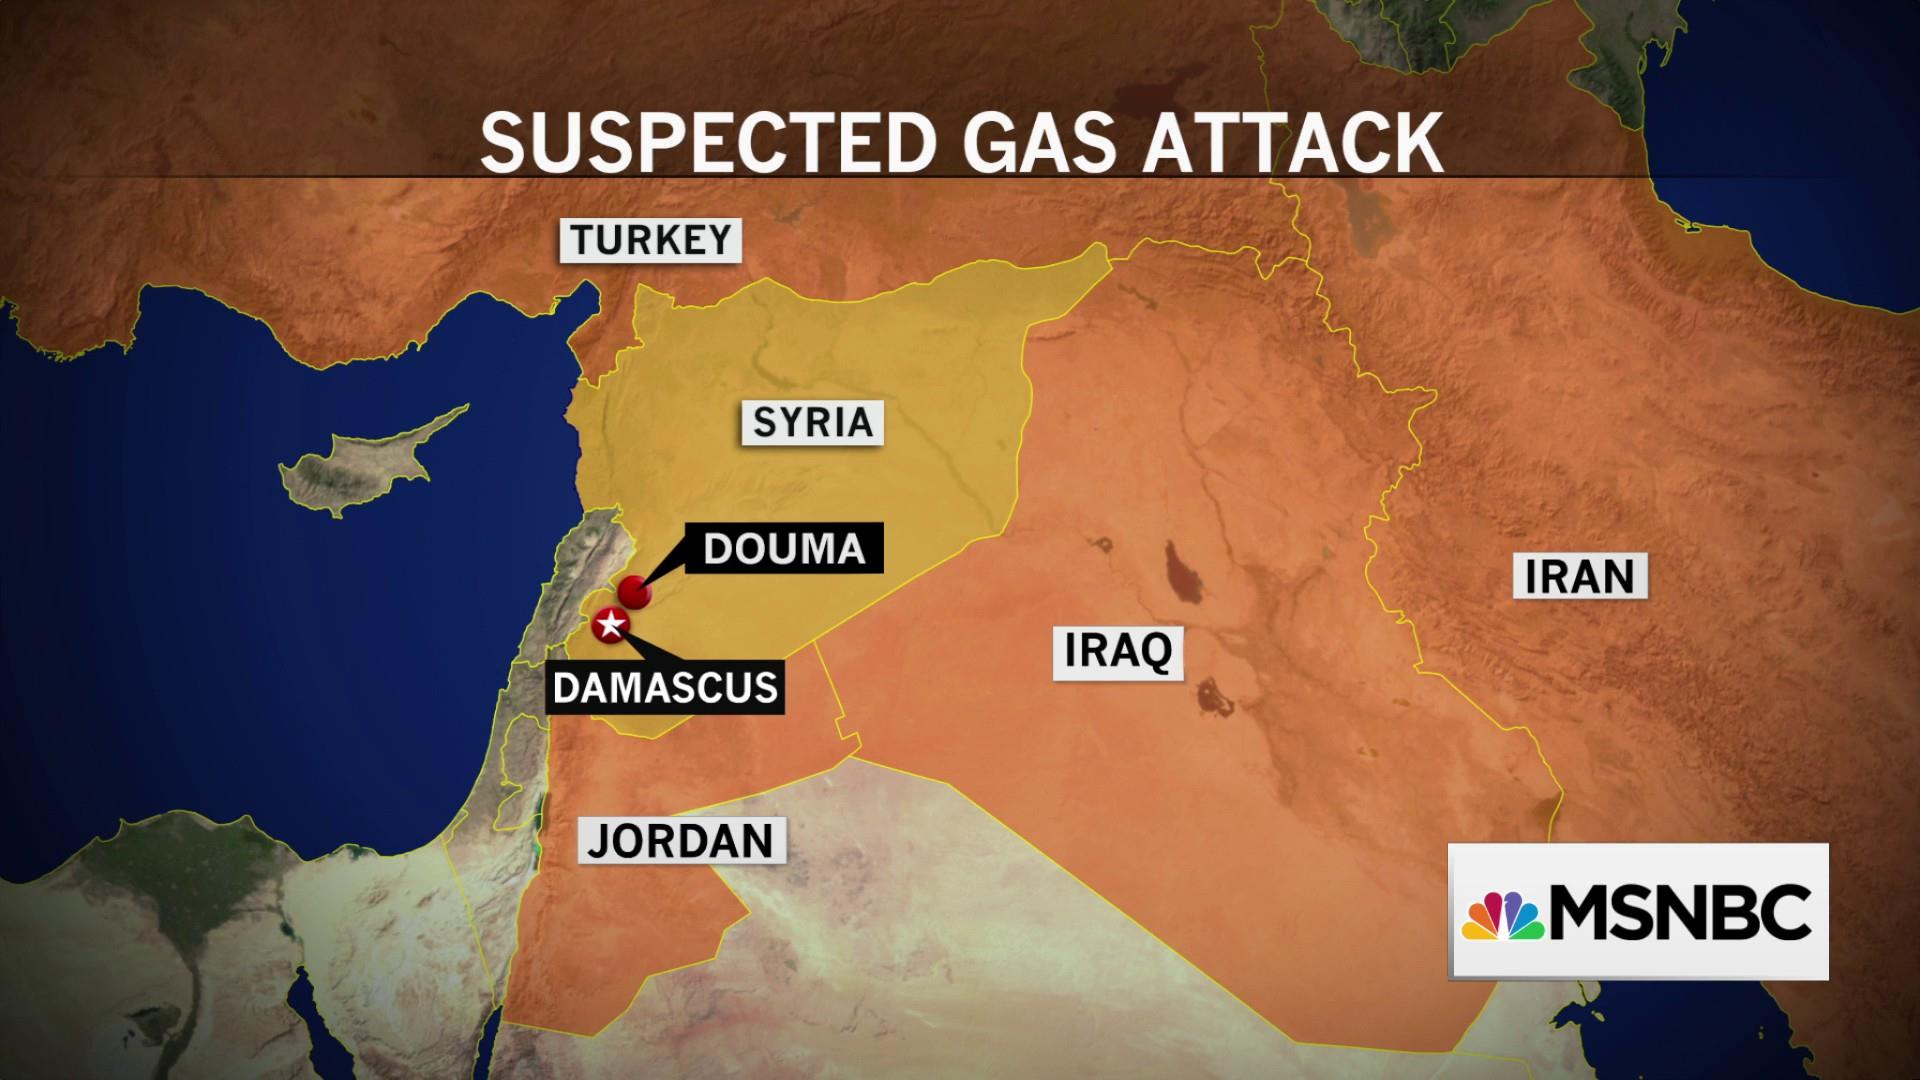 How will U.S. respond to suspected chemical attack in Syria?